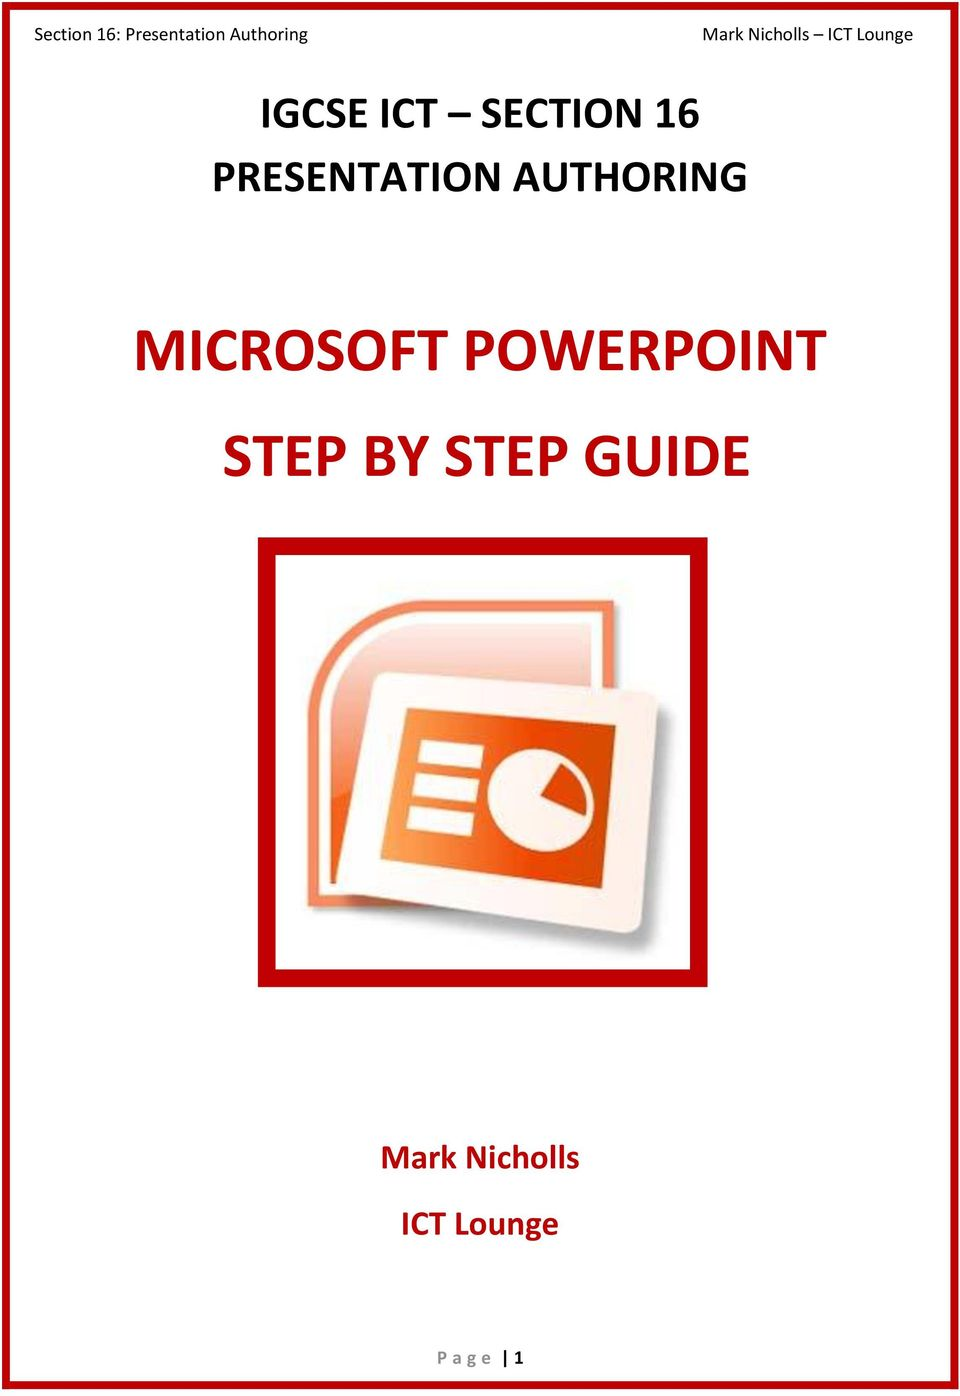 MICROSOFT POWERPOINT STEP BY